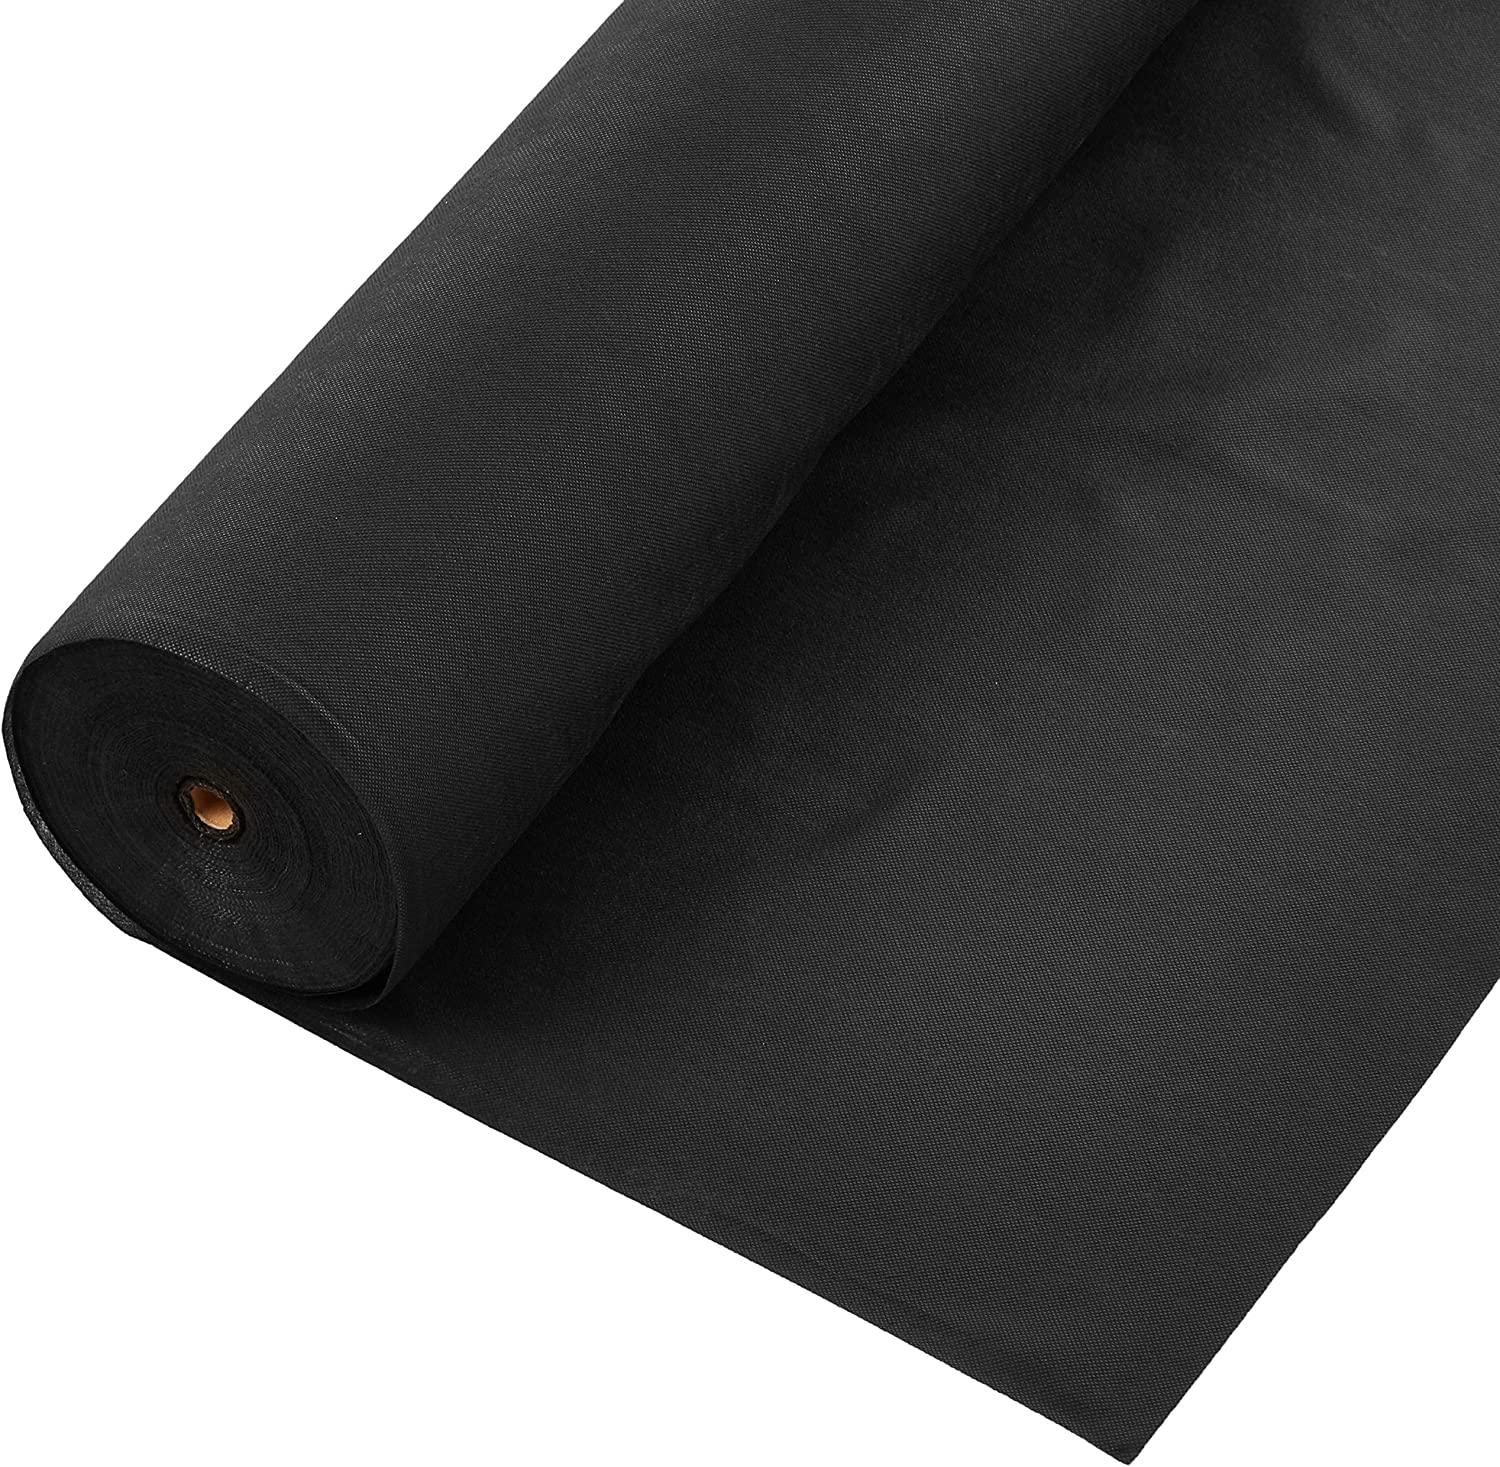 AHG Garden Weeds 3ft x 300ft / 20 YR Premium Series Landscape Fabric, 3 feet x 300 feet, Black